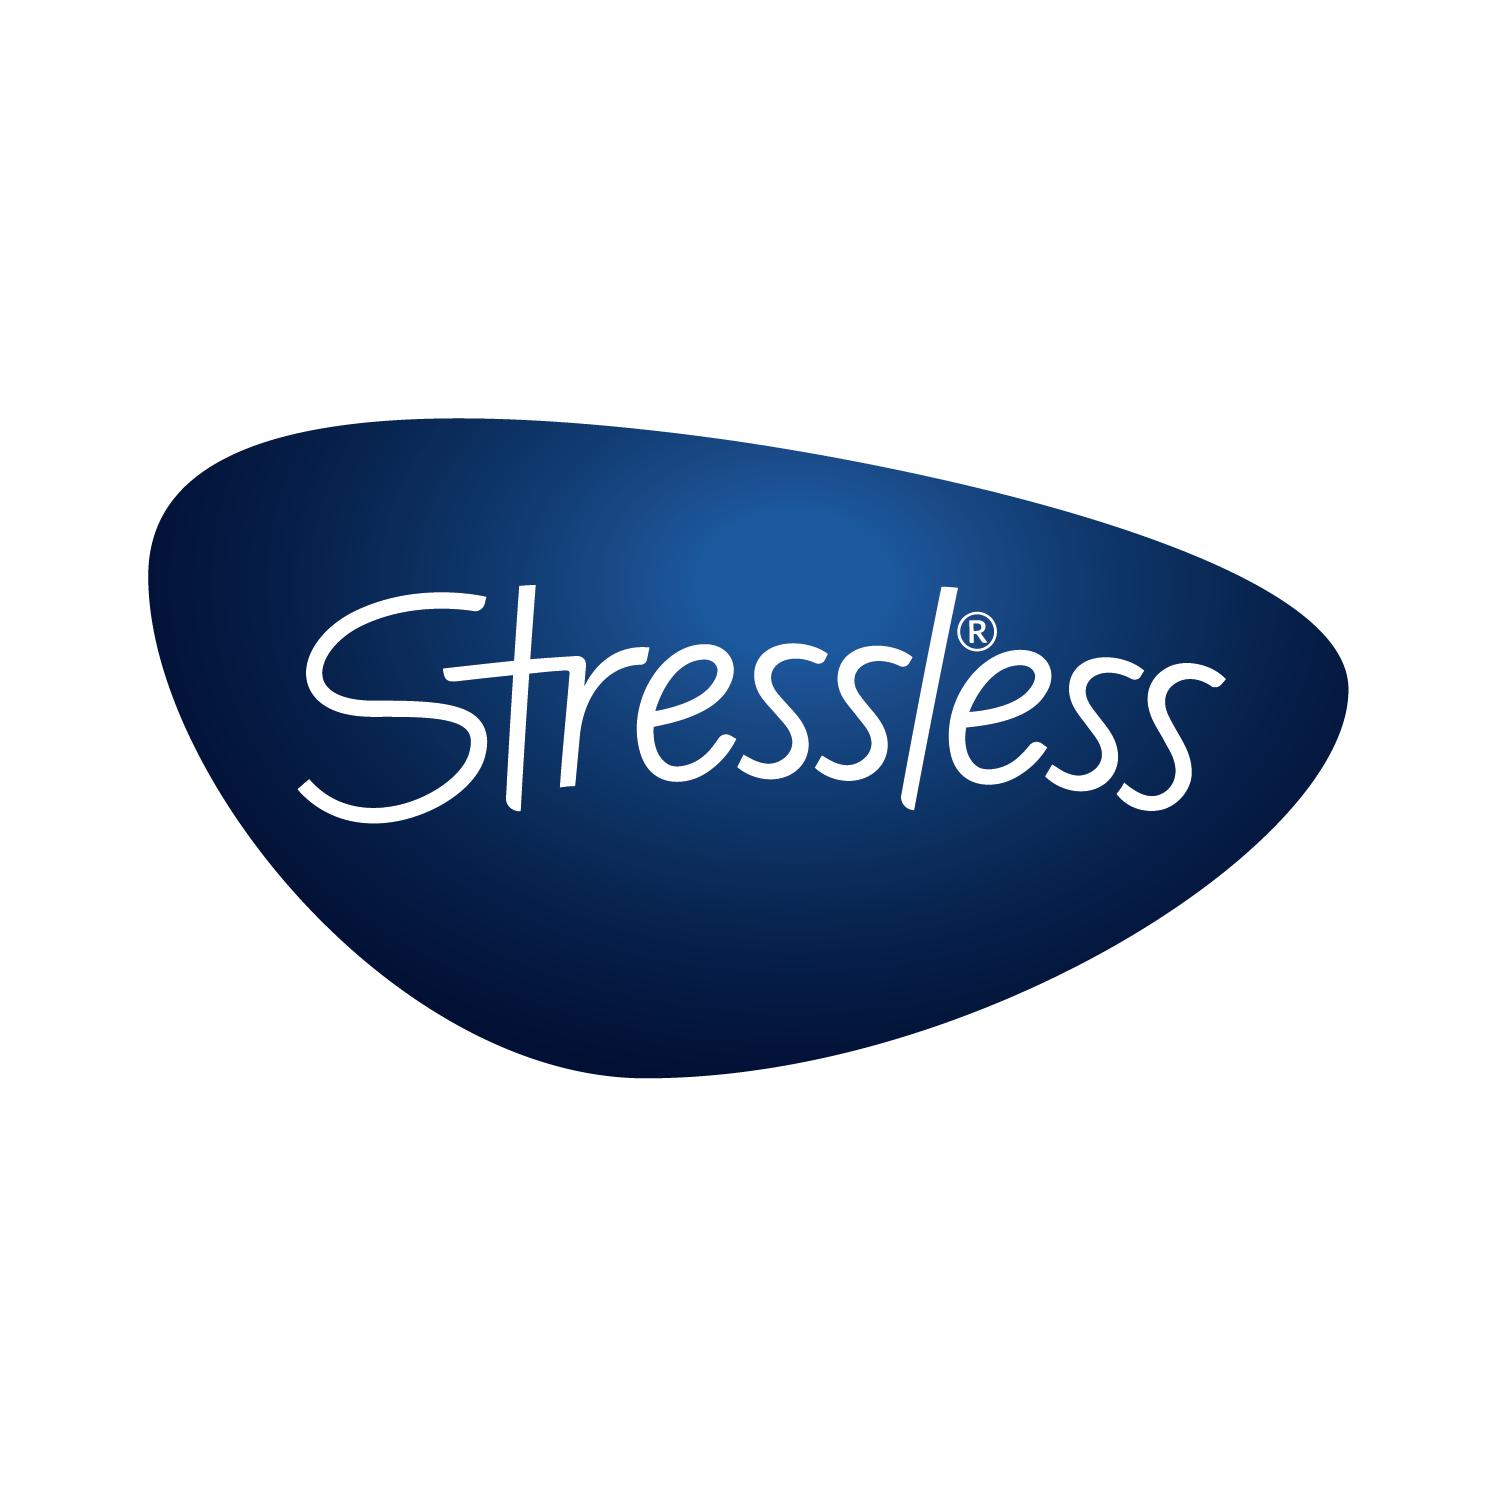 Stressless Outlet Lessstress Online Ekornes Stressless Best Prices On